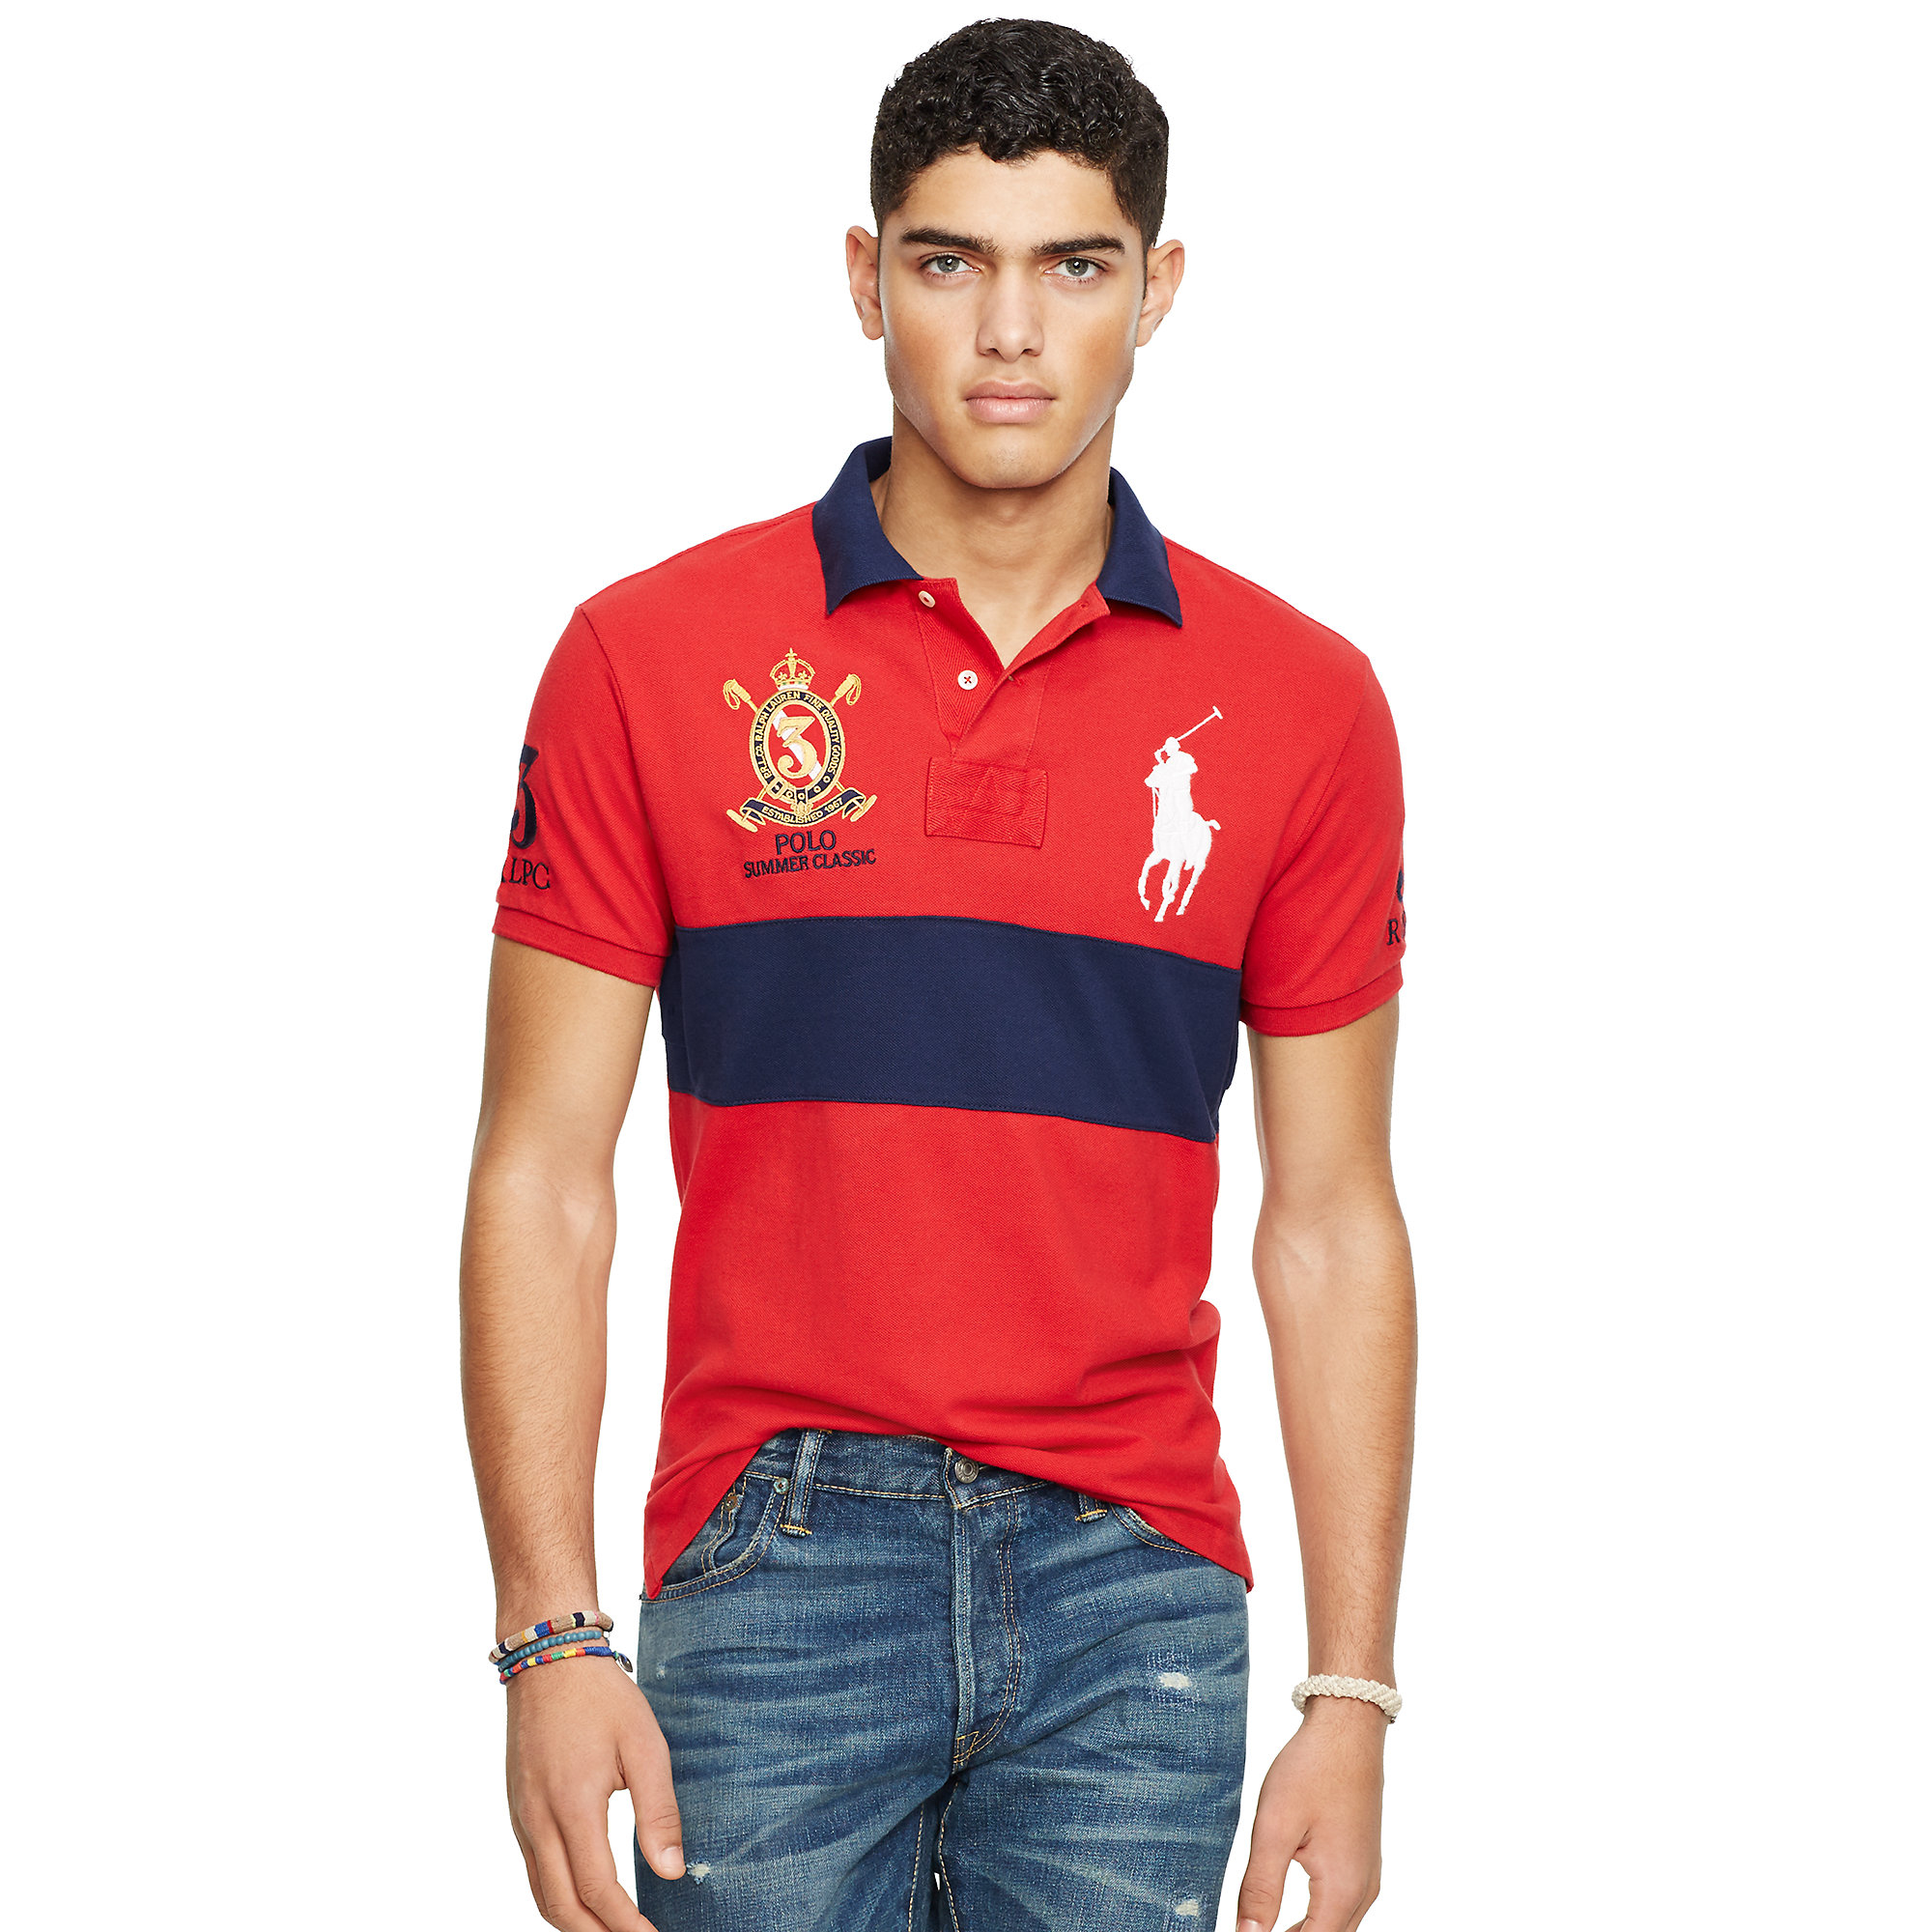 lyst polo ralph lauren custom fit big pony polo shirt in blue for men. Black Bedroom Furniture Sets. Home Design Ideas